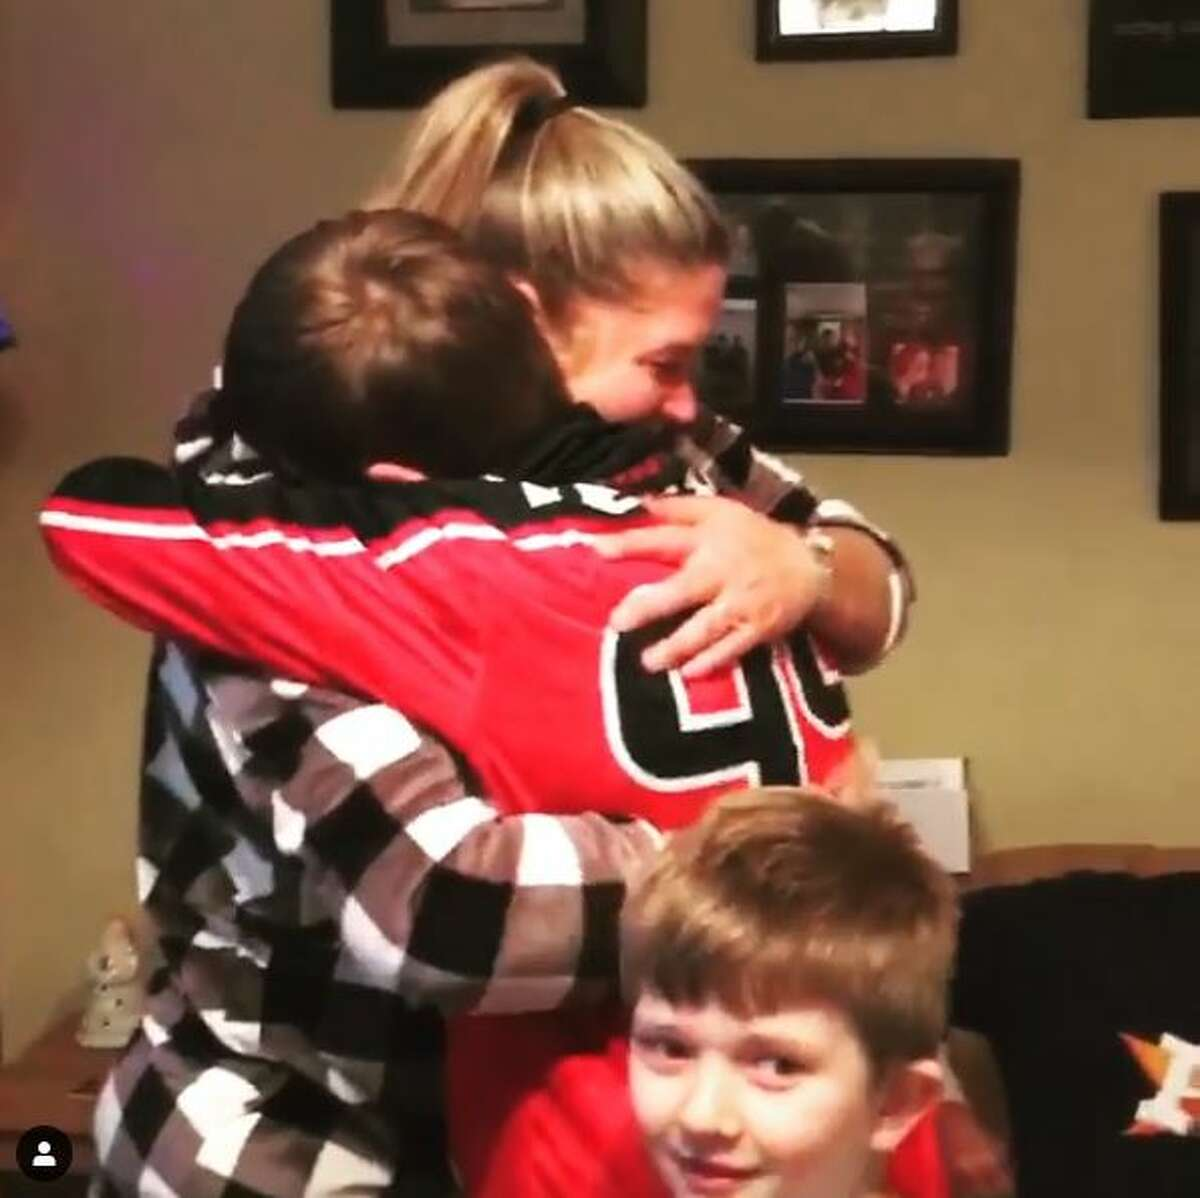 When Texans star J.J. Watt saw a young fan get the Christmas gift of his dreams, it literally brought tears to his eyes.